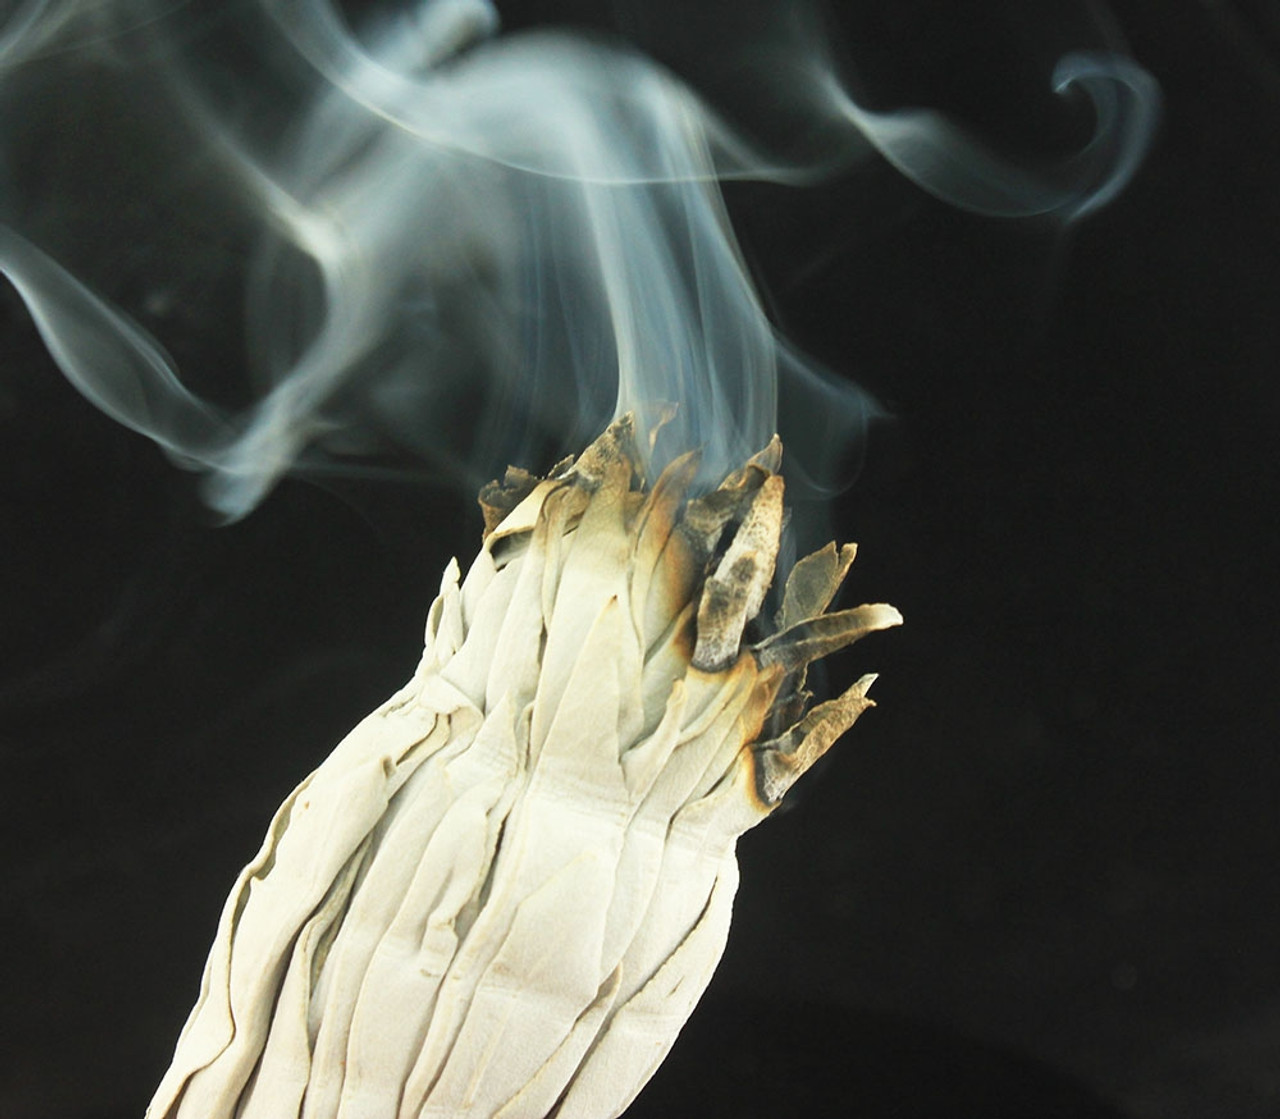 Smudging and Incense